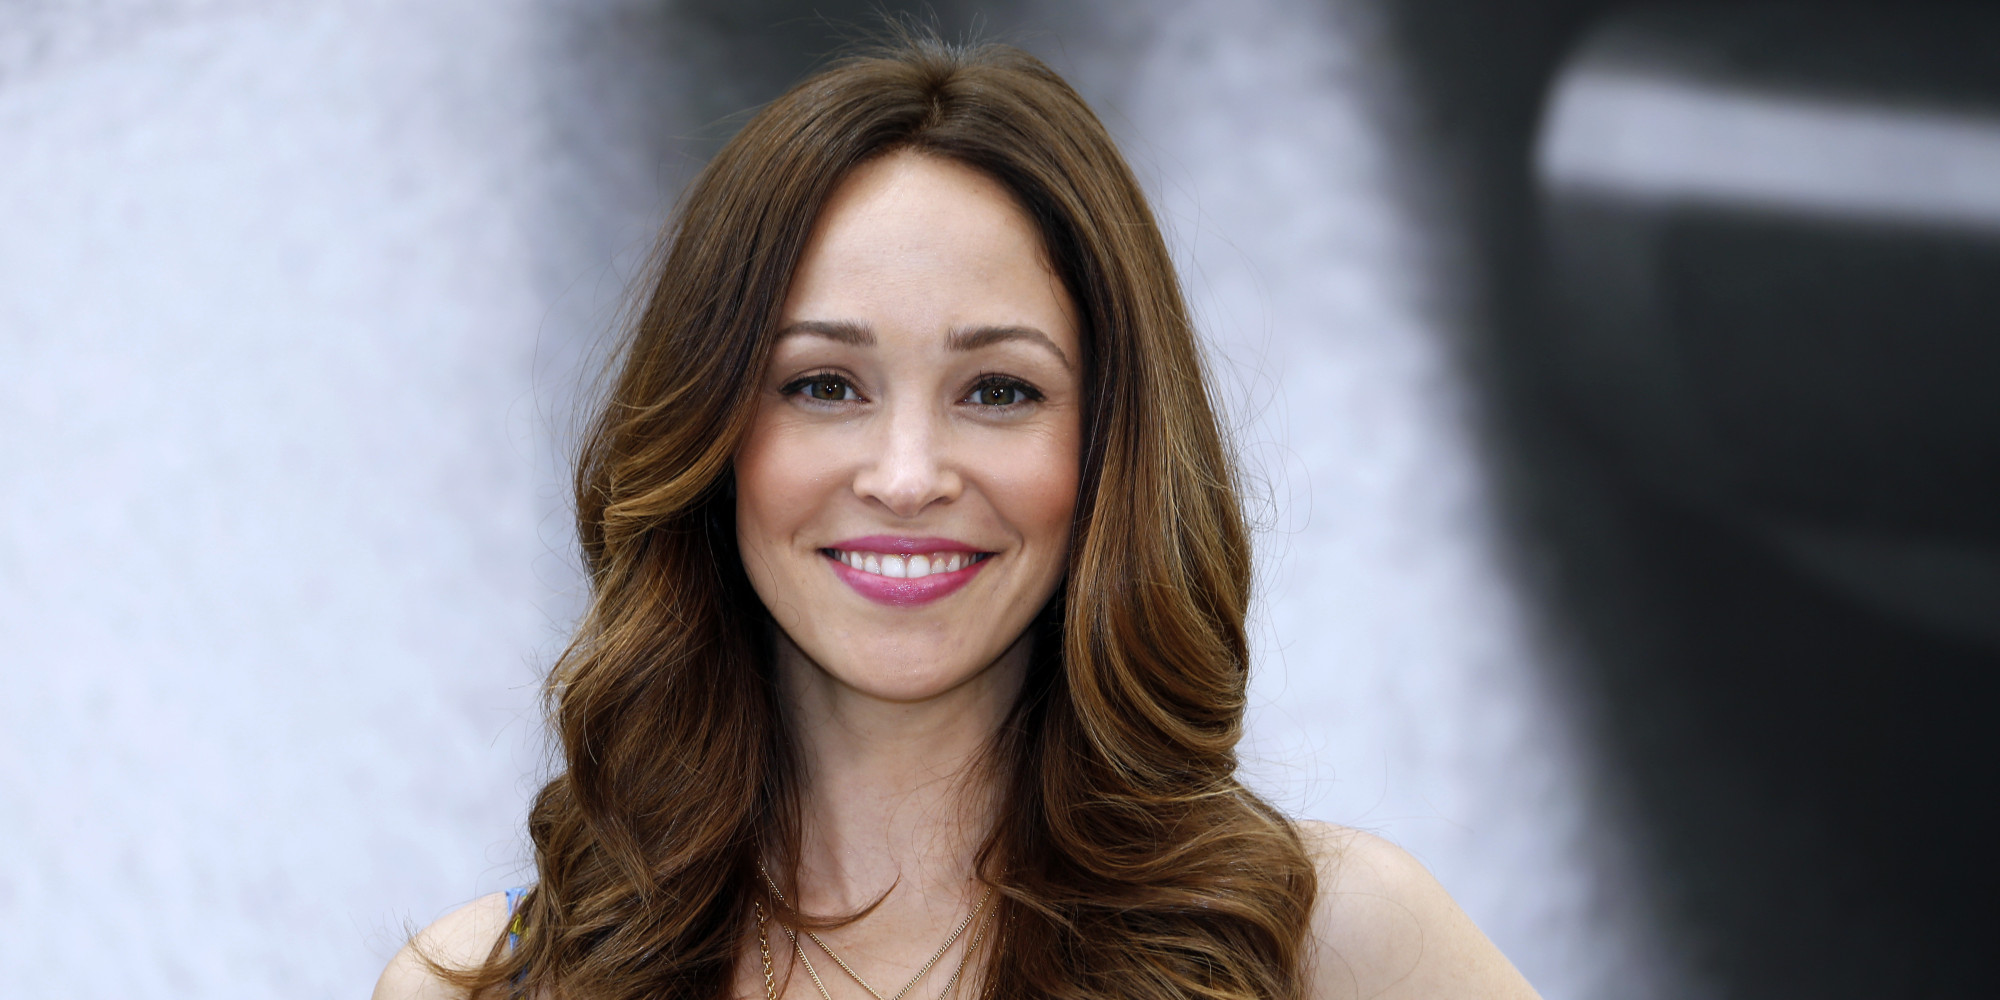 Autumn Reeser Smile Wallpaper 66363 ...